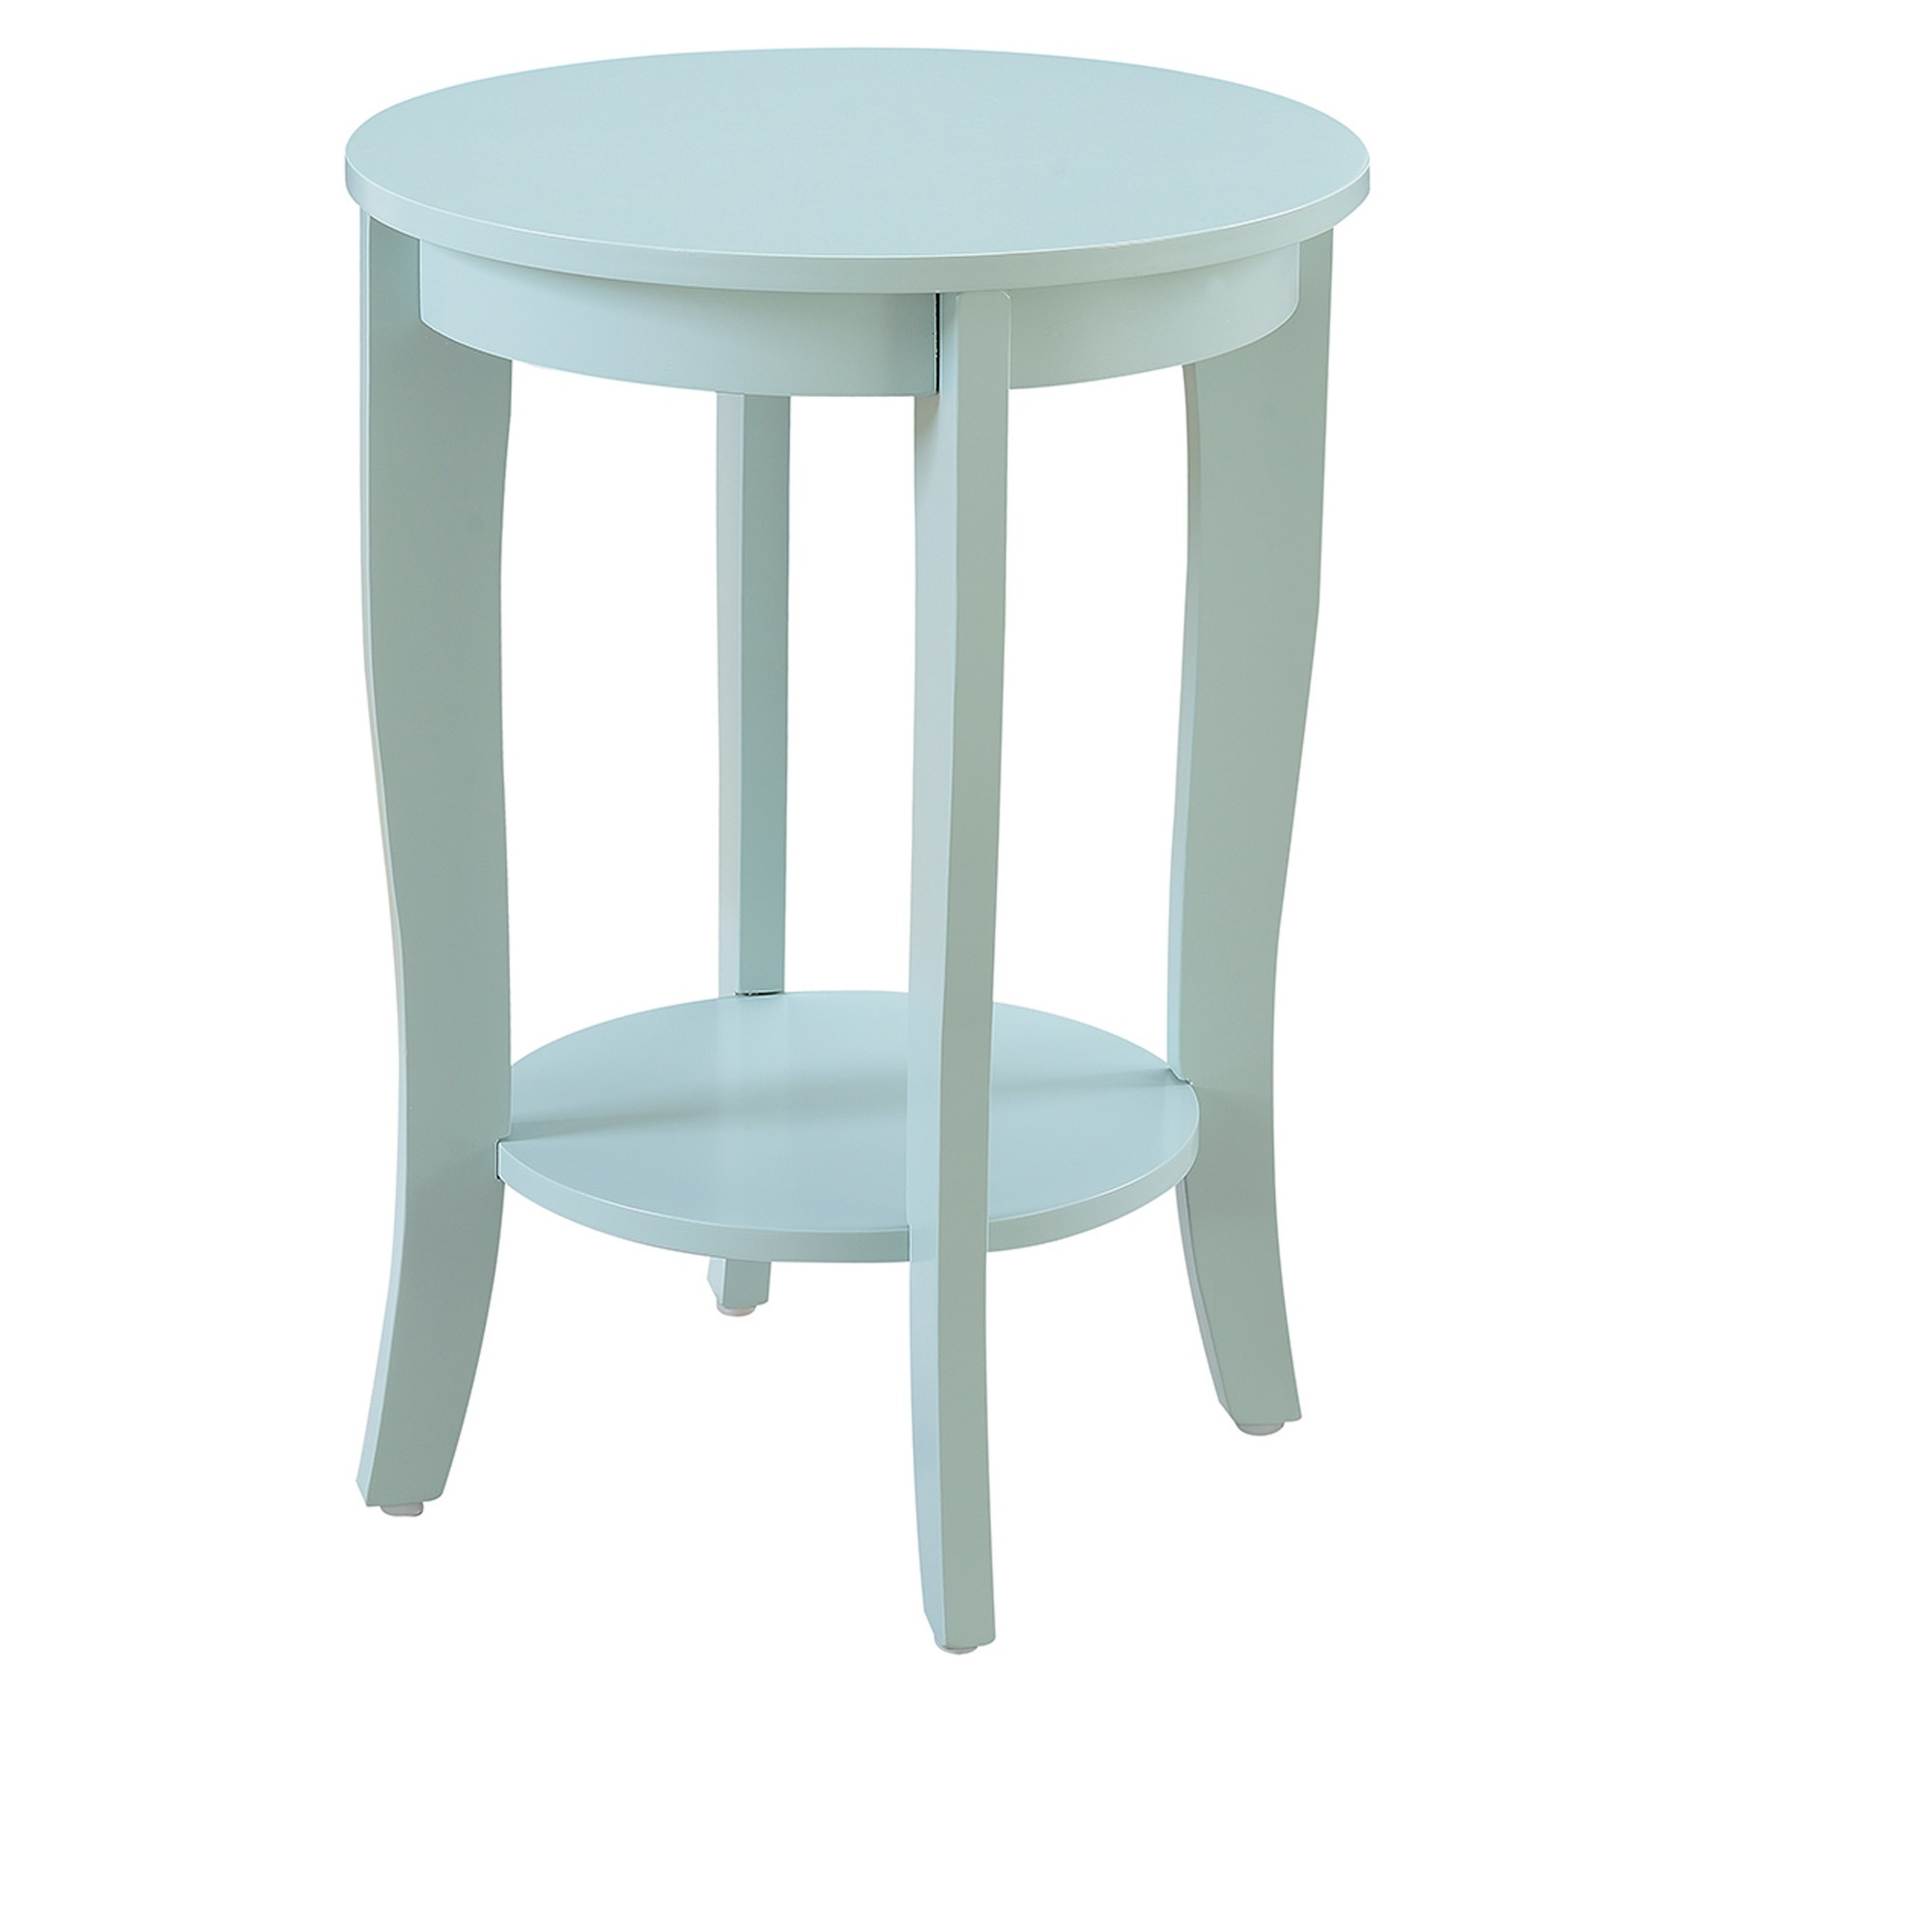 american heritage round end table sea foam blue johar teal accent target furniture floor pieces sofa with shelves tablecloth and napkins set kidney side drawer file cabinet ashley